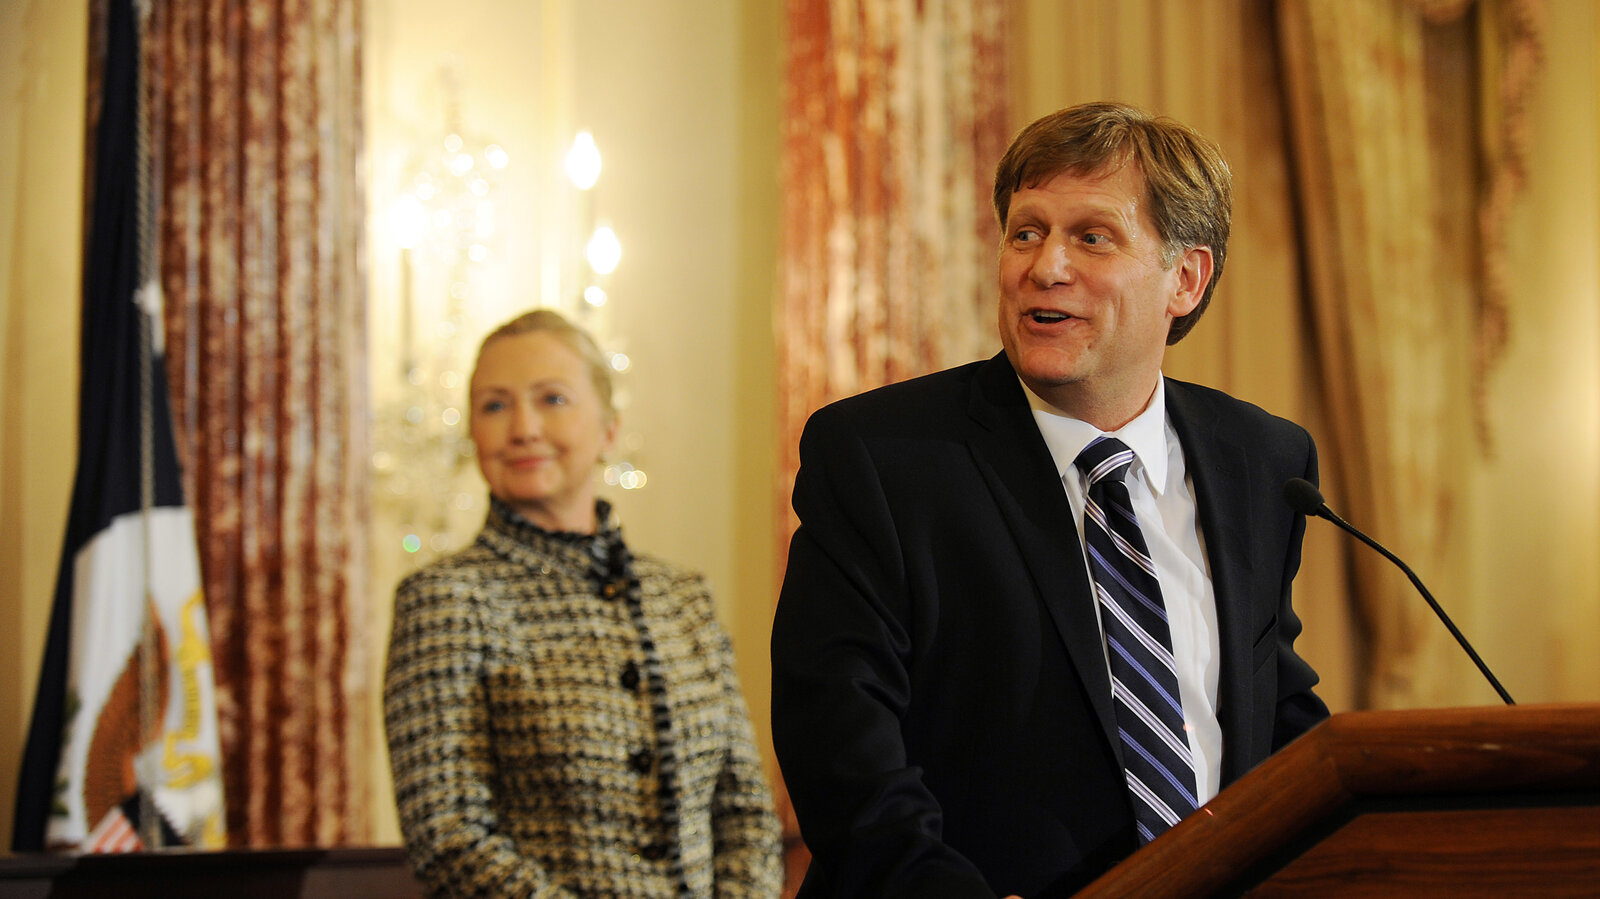 'U.S. Secretary of State Hillary Clinton smiles at a remark made by Ambassador-Designate to Russia Michael McFaul during his swearing-in ceremony at the State Department in 2011. (Astrid Riecken/Getty Images)